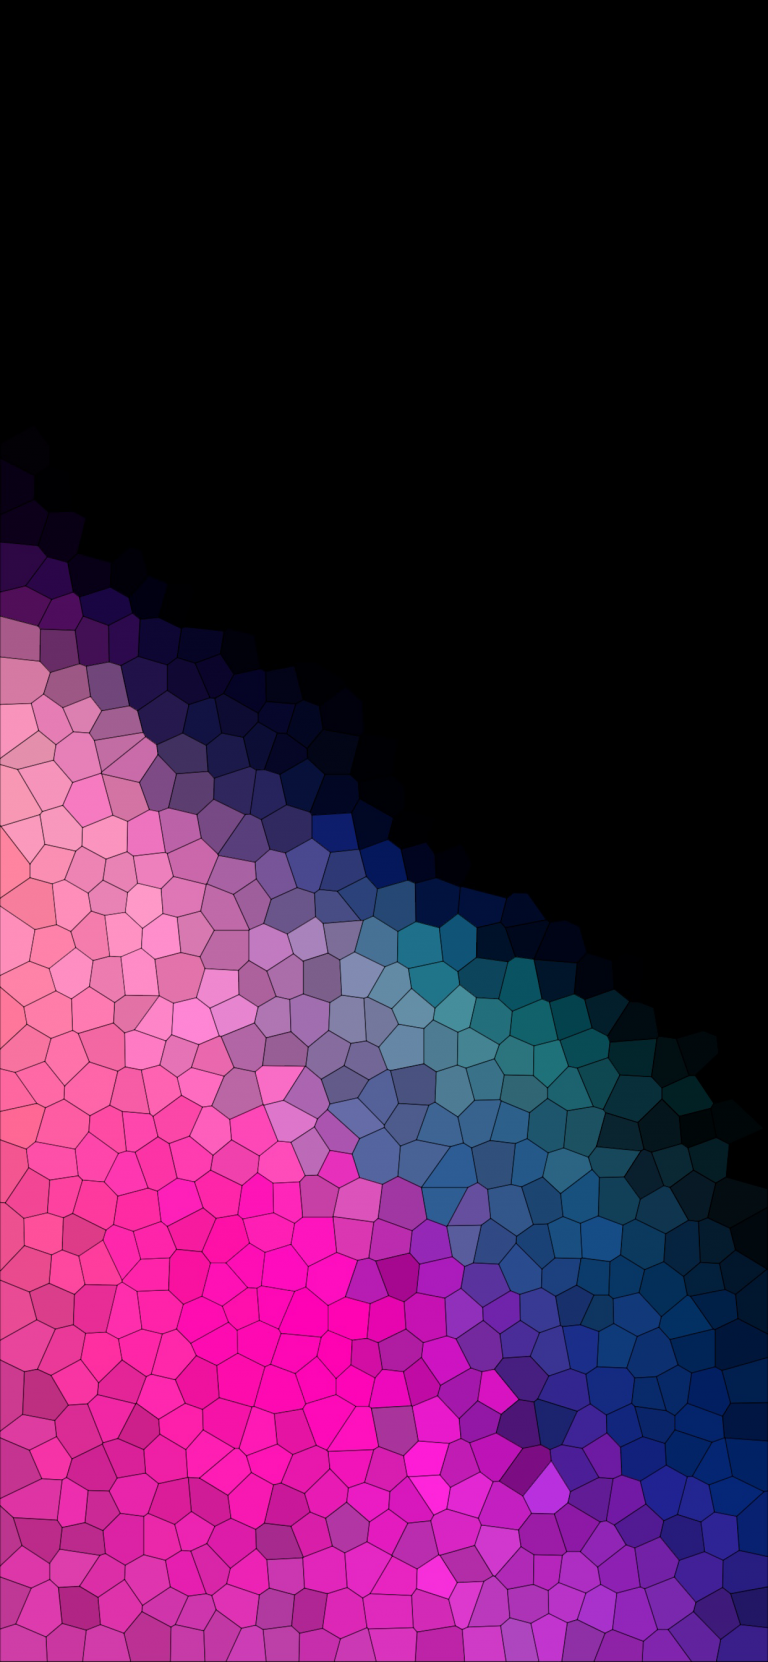 Notchless gradient wallpapers for iPhone X Phone